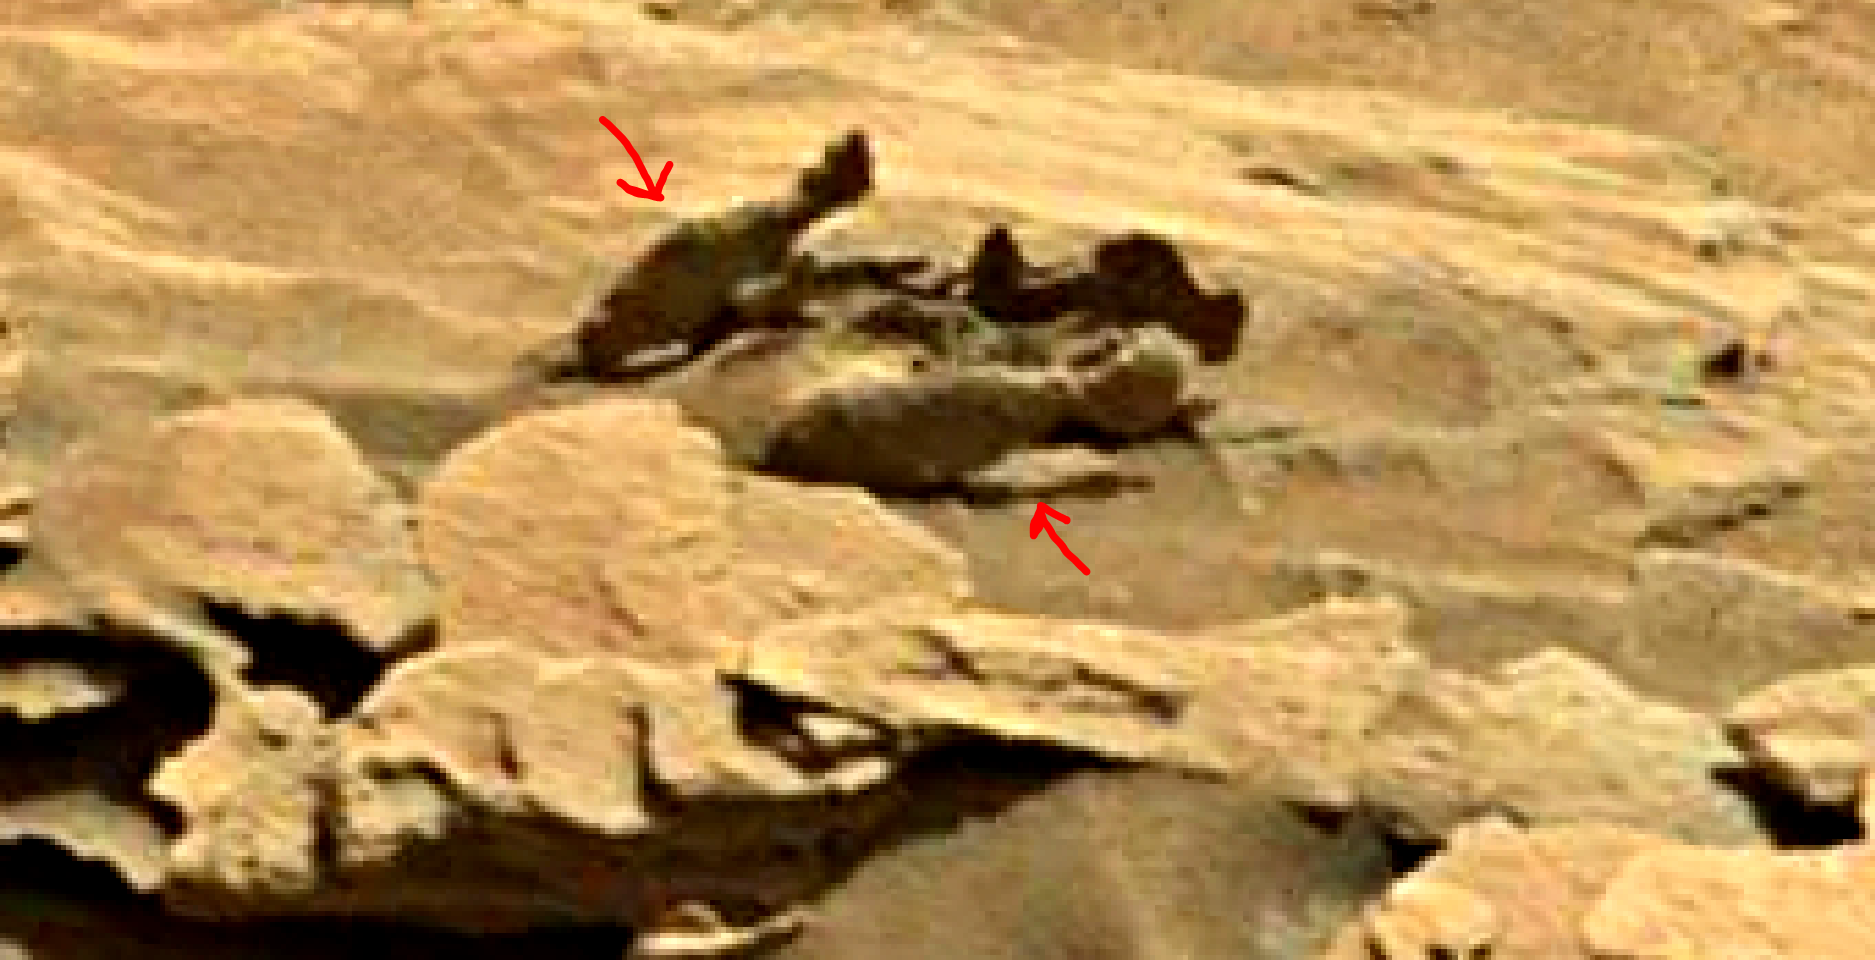 Mars Sol 1349 Curiosity – 1349ML00648100 Image Group ...